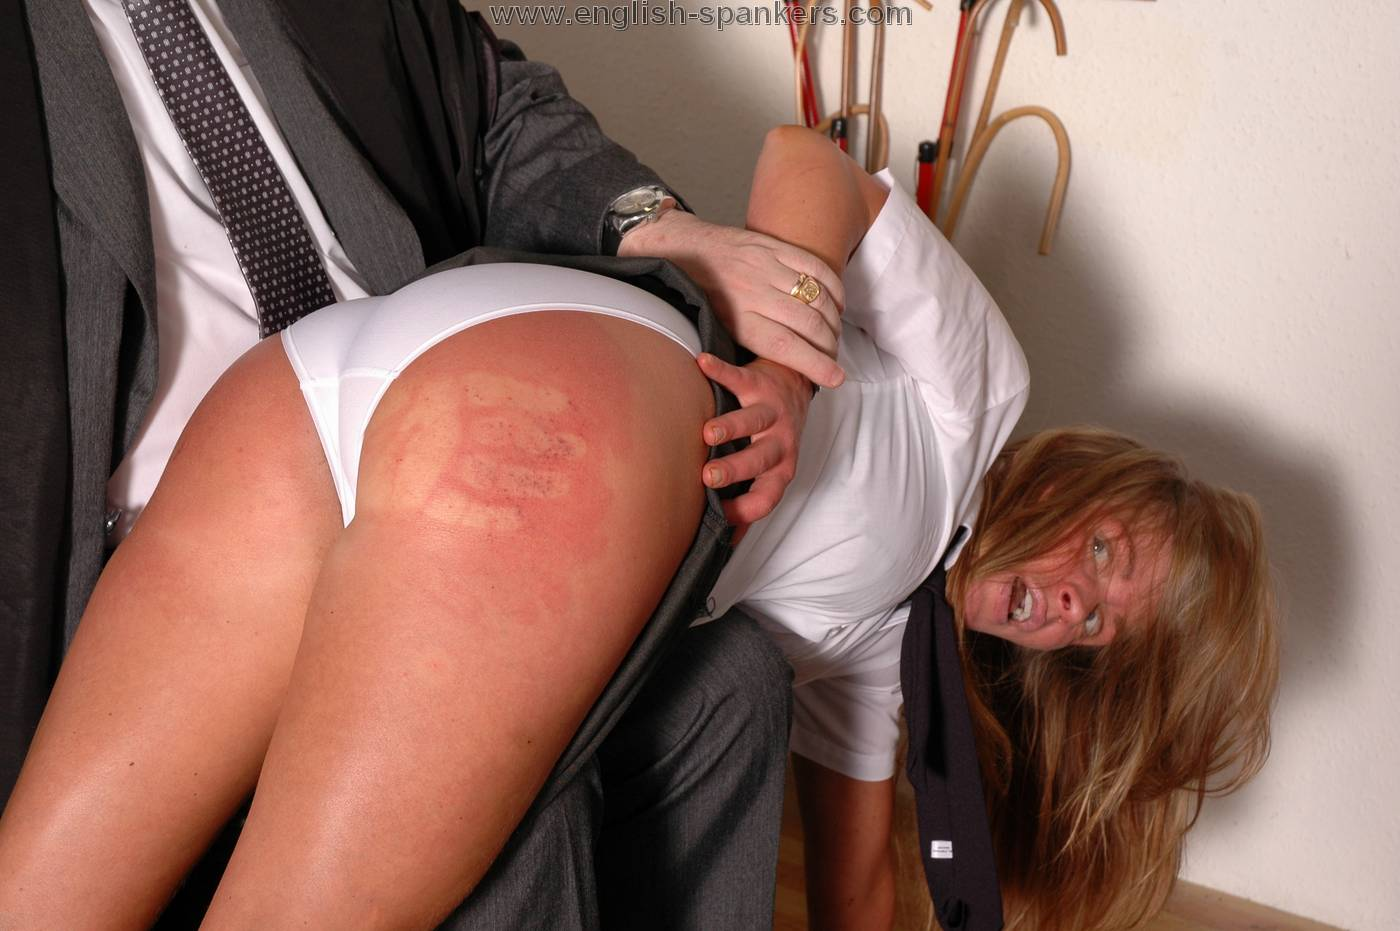 Bare bottom get spanked their who woman